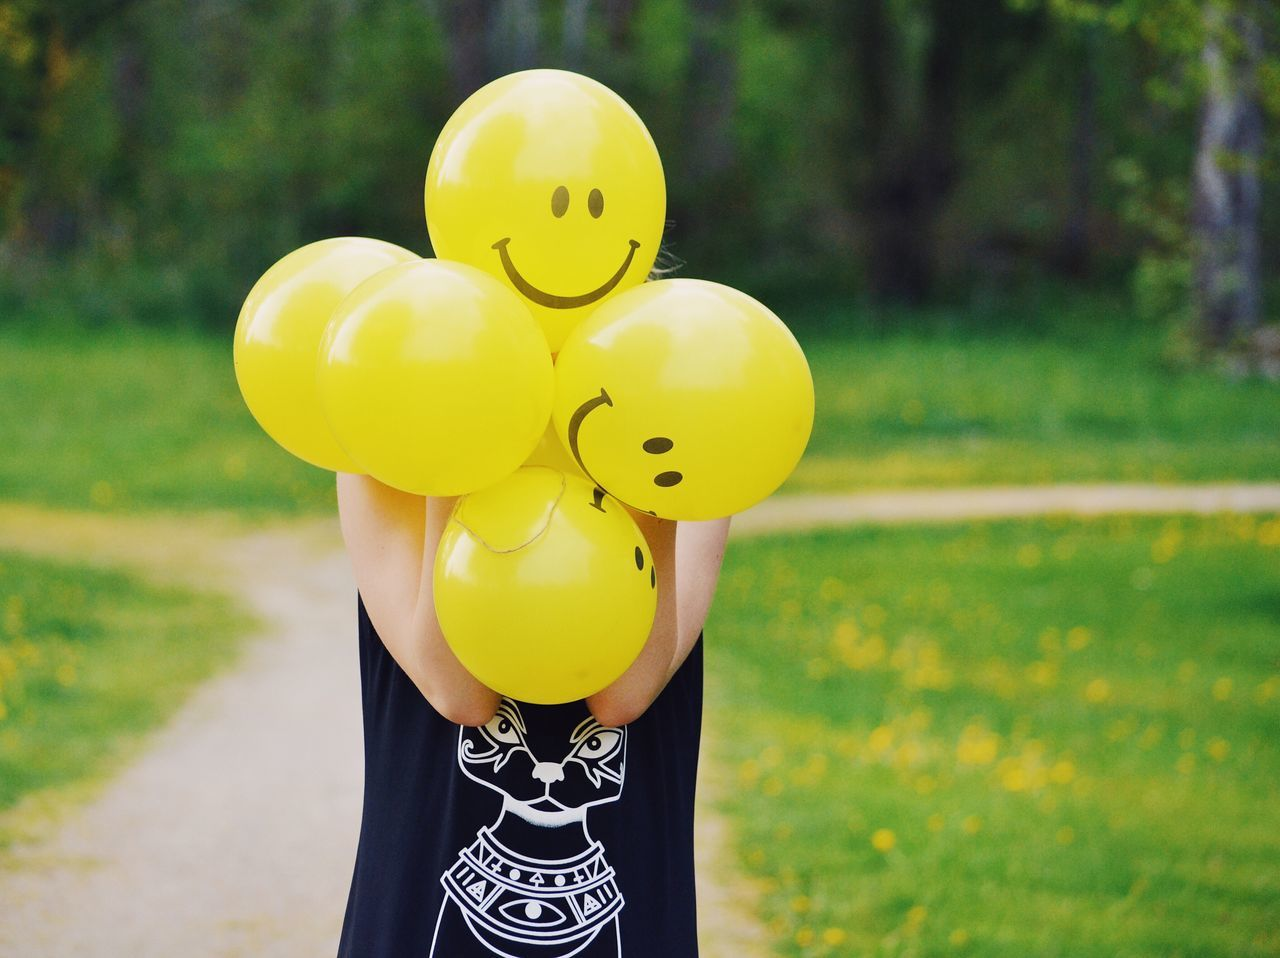 BYOPaper! Balloon Yellow Outdoors Day Anthropomorphic Smiley Face Childhood Fun One Person Lifestyles People Smiley Summer Summertime Girl Balloons Funny Social Media